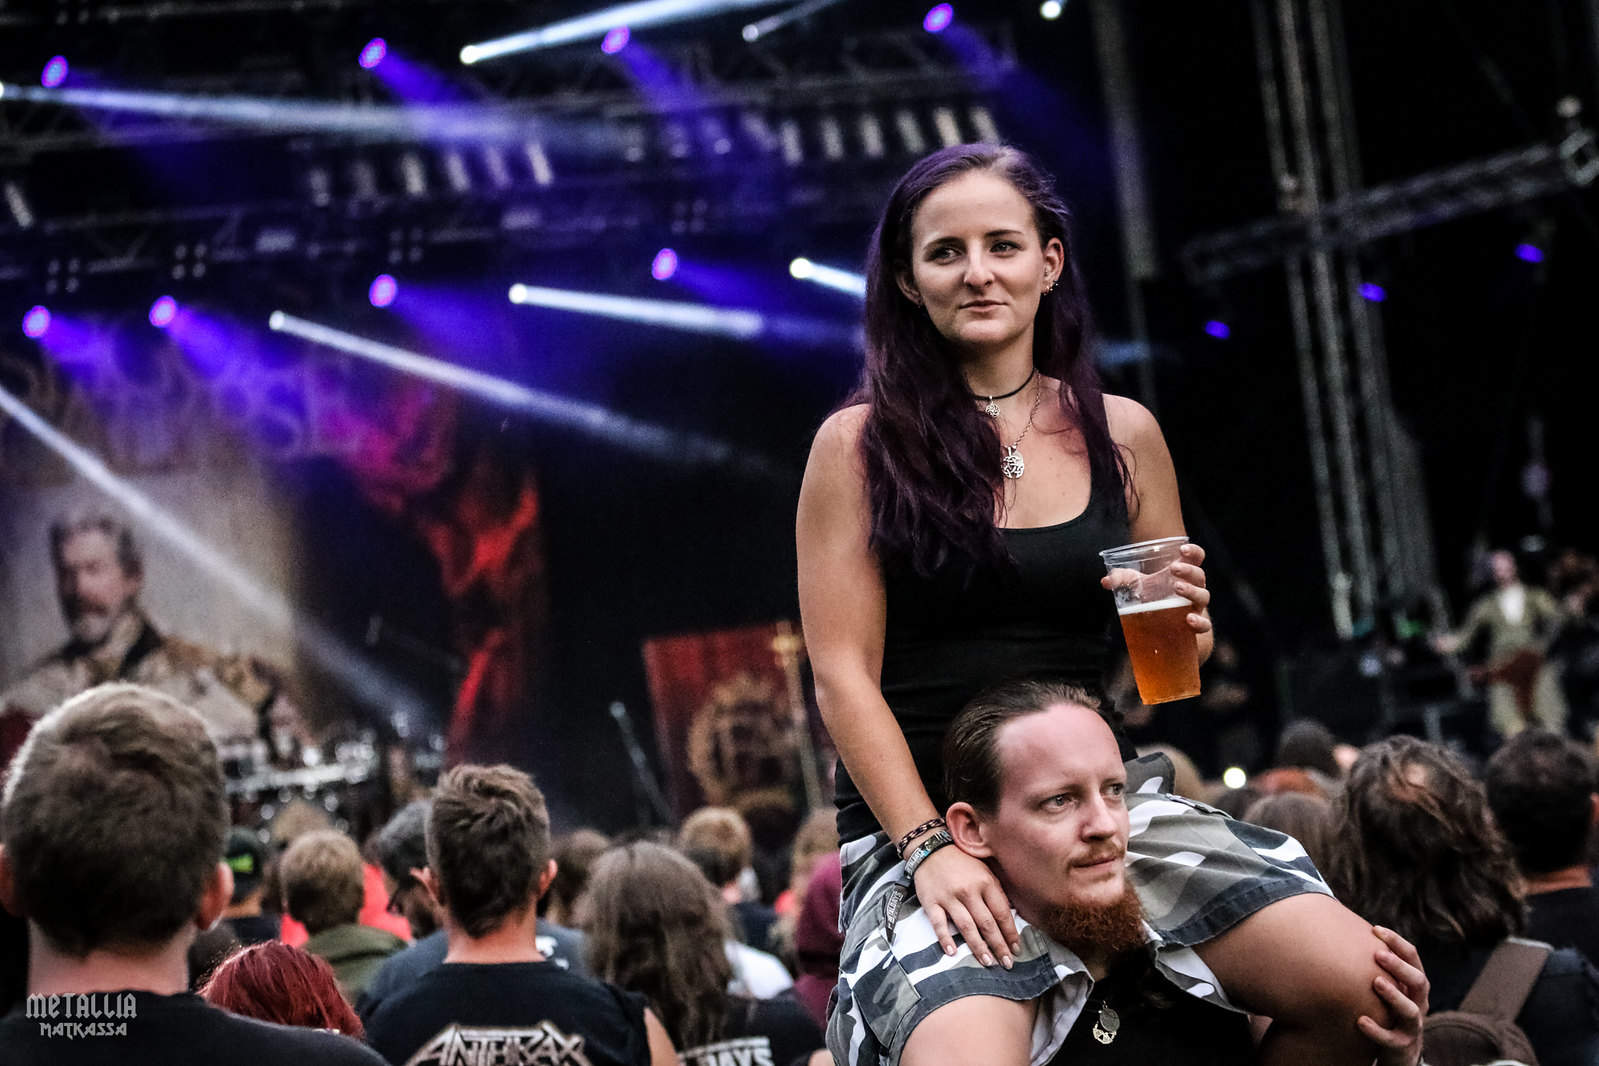 metaldays 2016, metaldays, metalcamp, metal festival, tolmin, metalheads, metal girl, fleshgod apocalypse